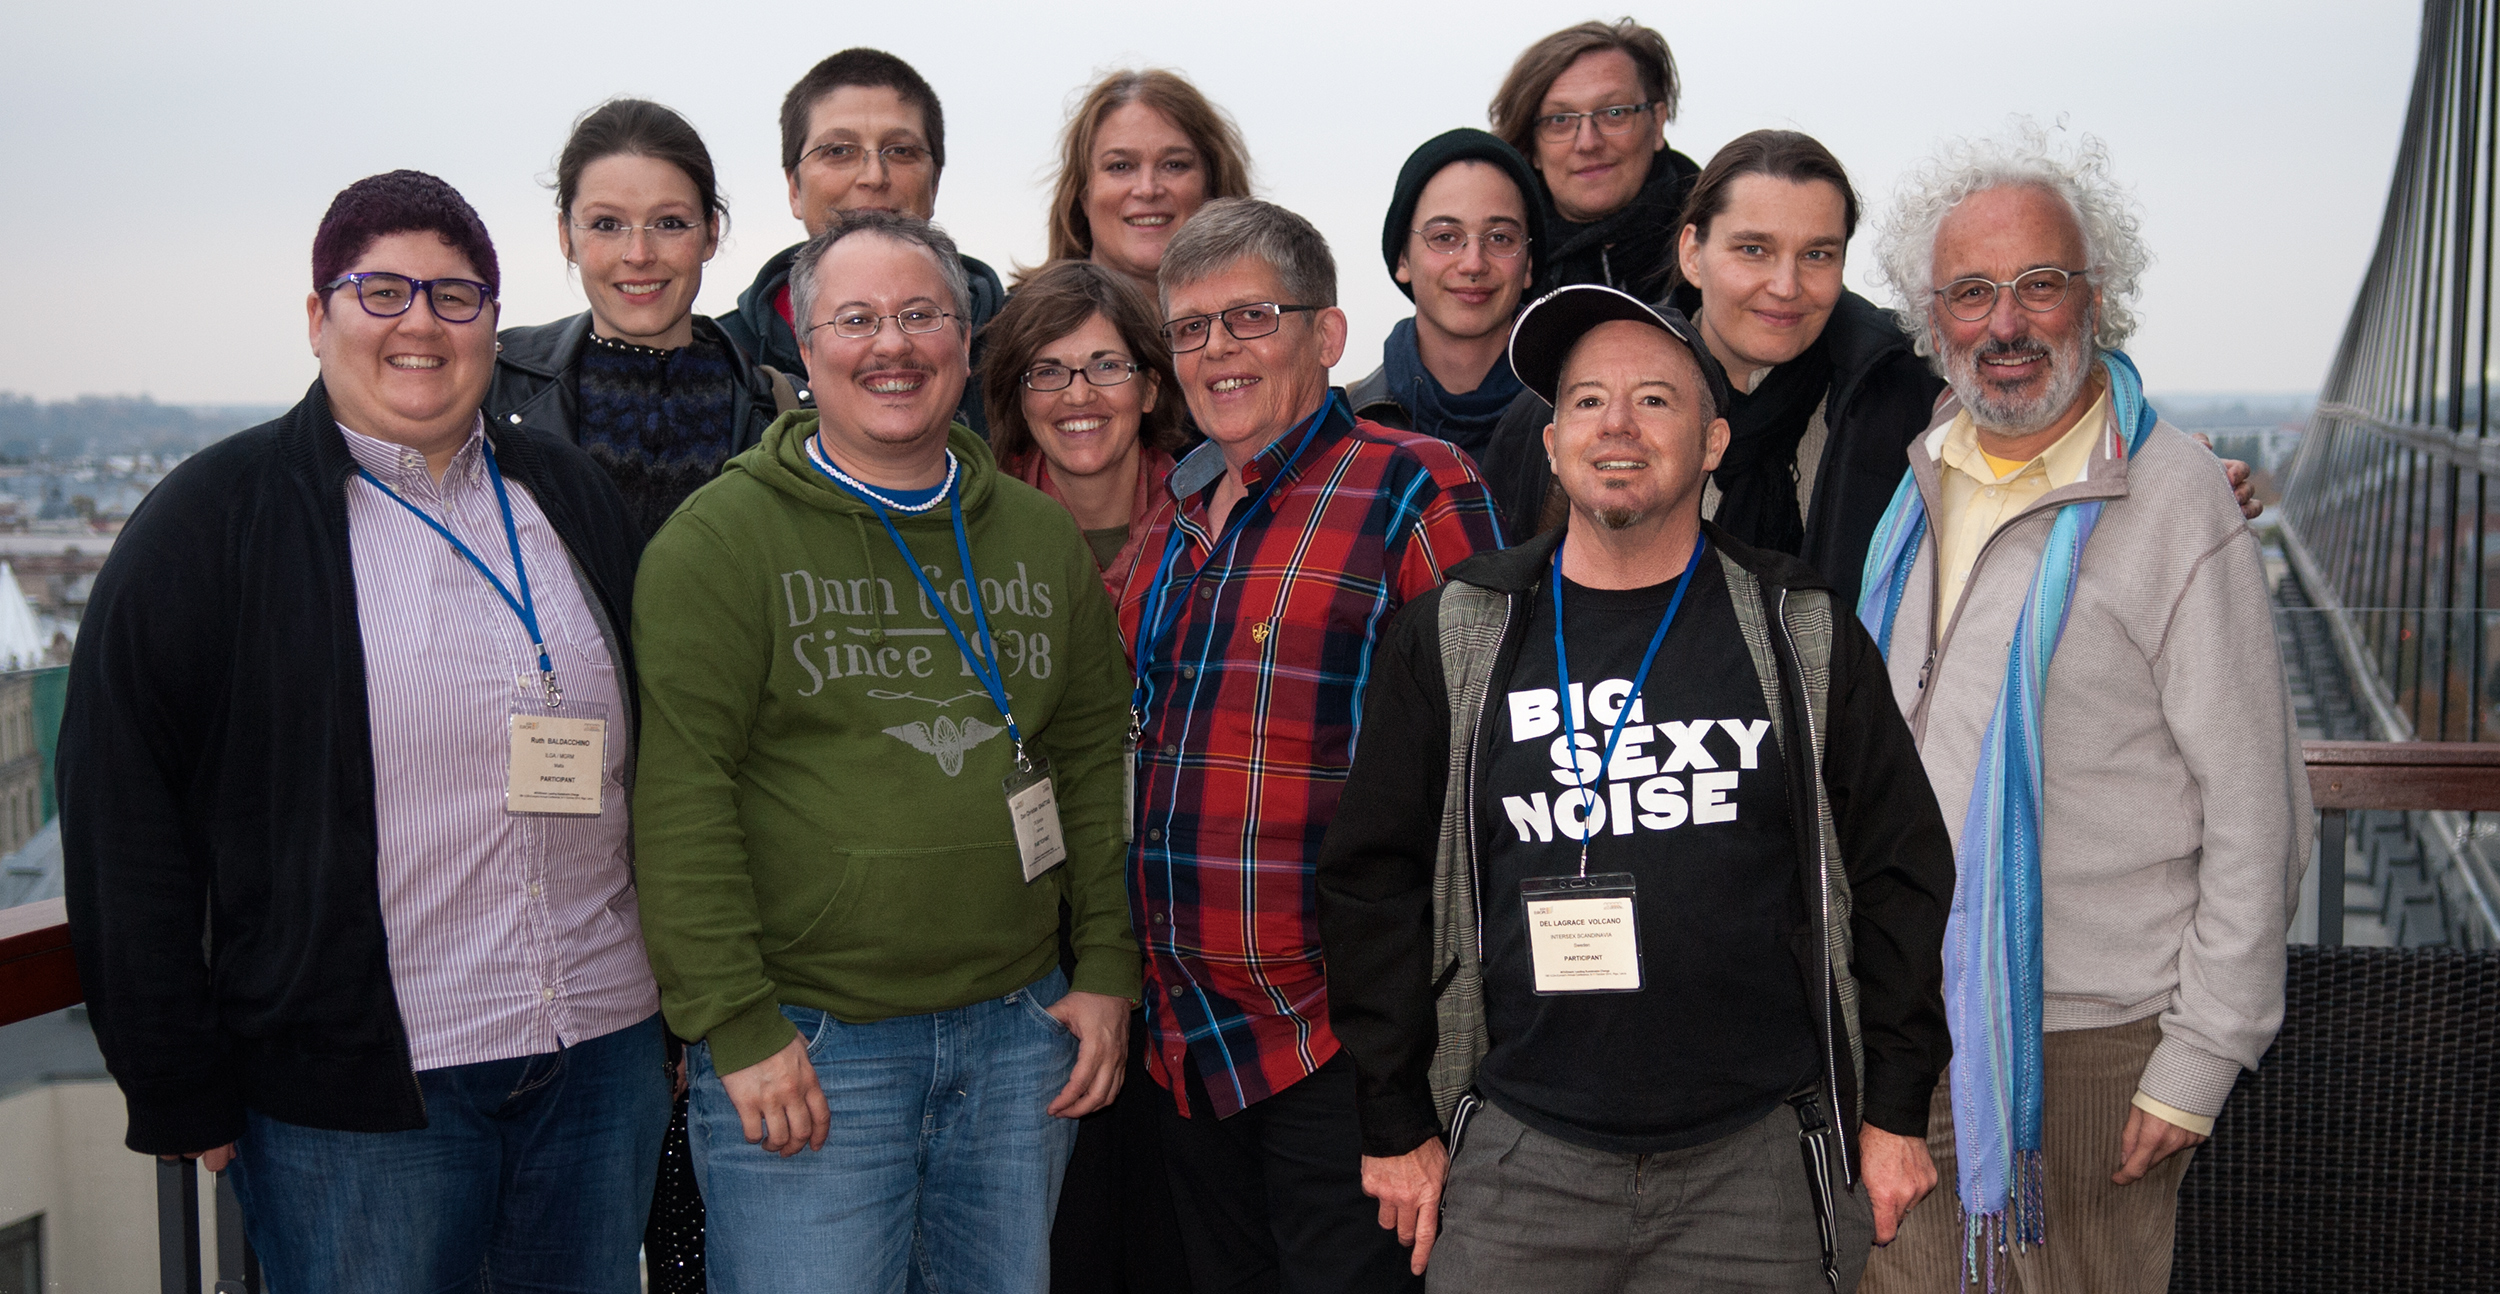 european intersex meeting 2014 riga